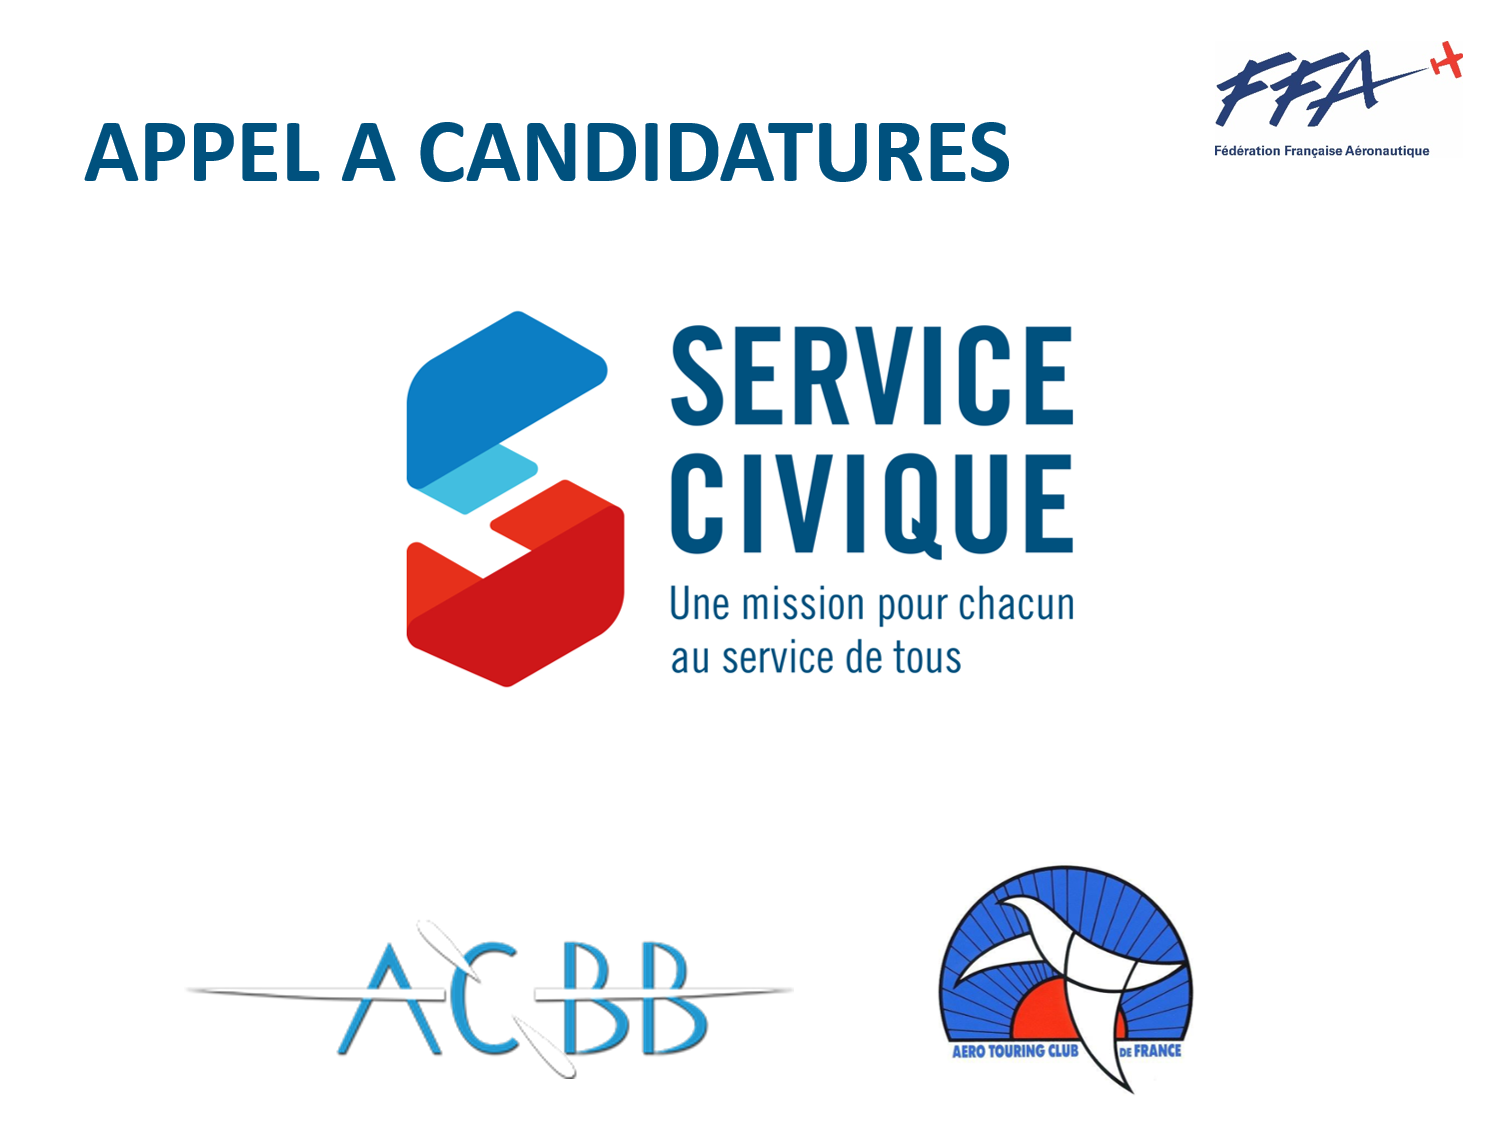 ../News/2019052810520701_Service civique def.png